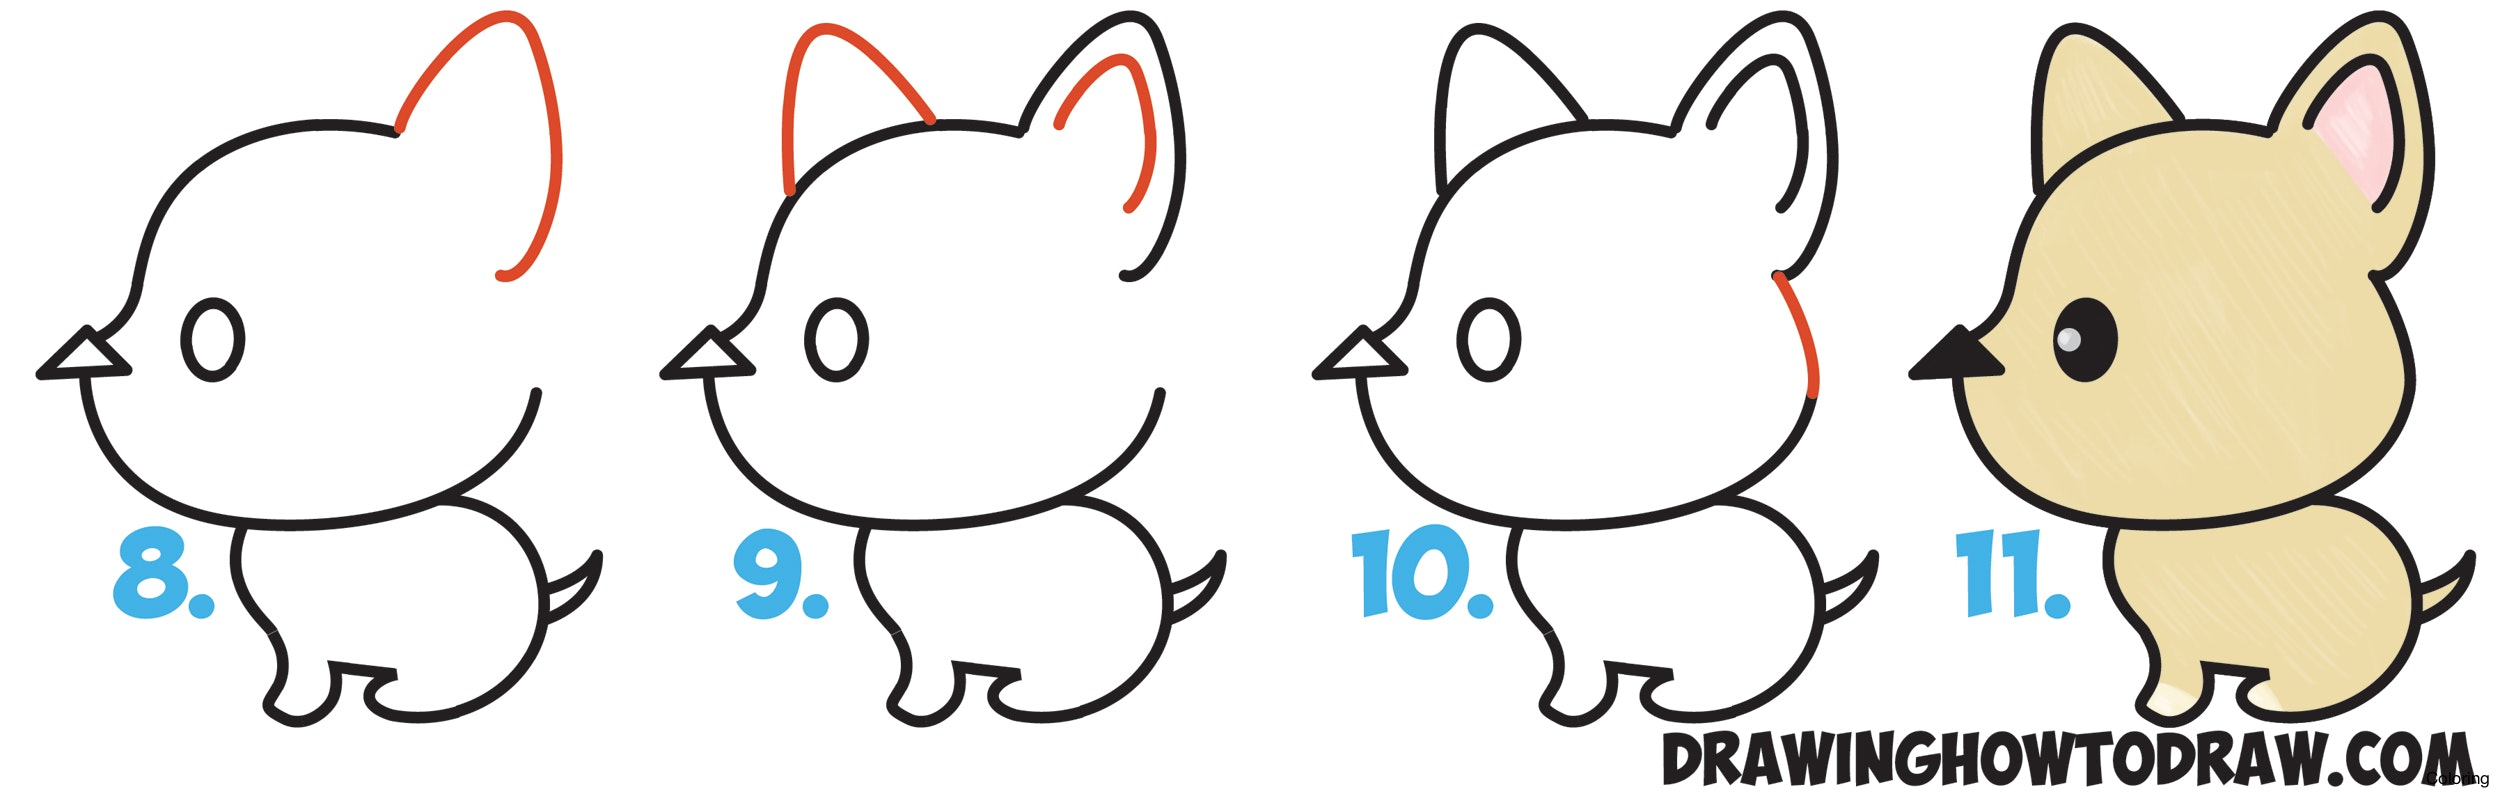 2500x794 How To Draw Cute Kawaii Dog From Arrow Easy Step By Drawing